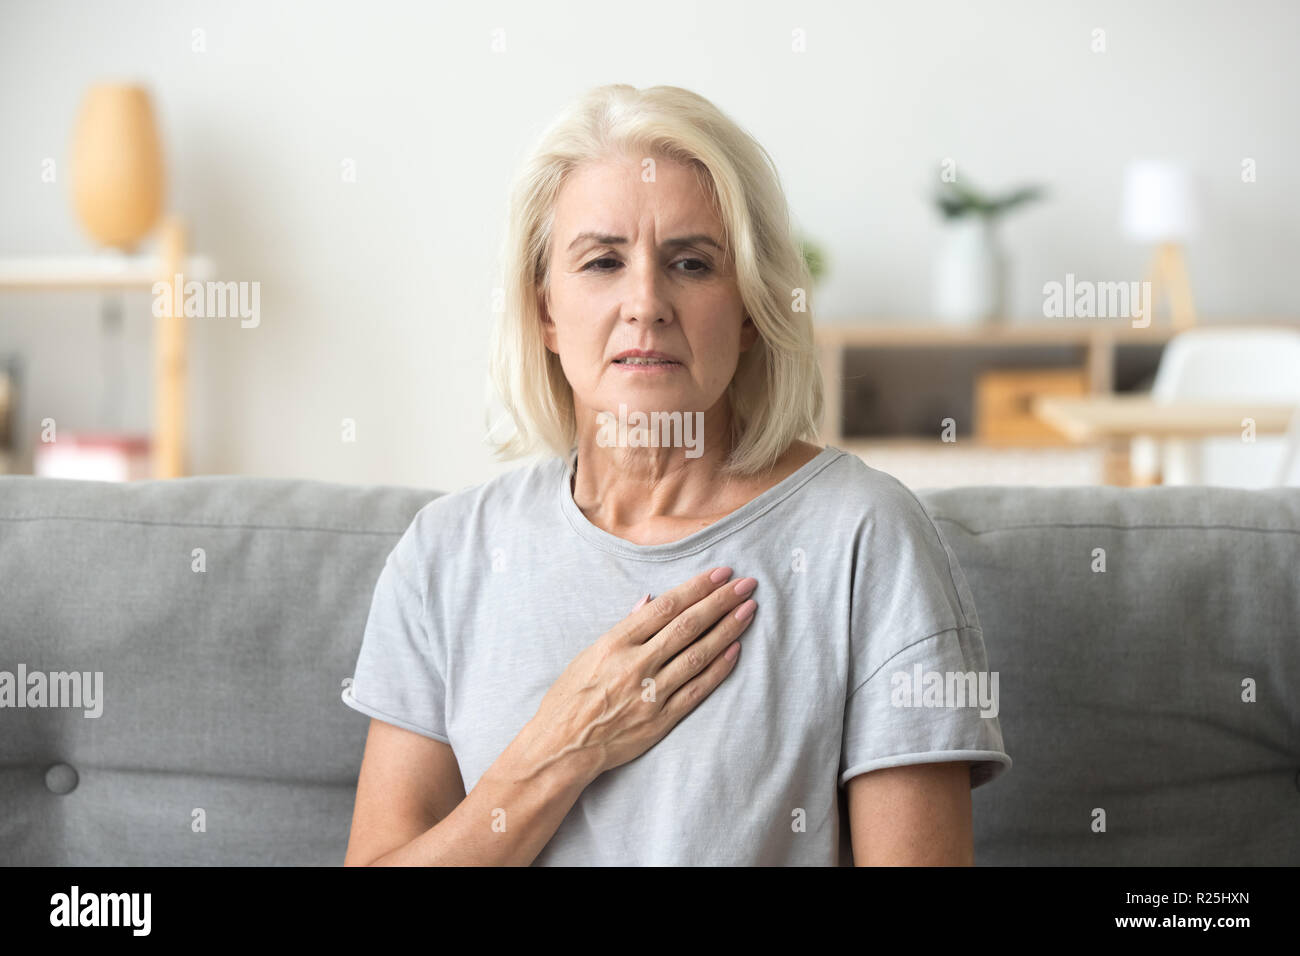 Upset stressed mature older woman feeling heartache touching che - Stock Image